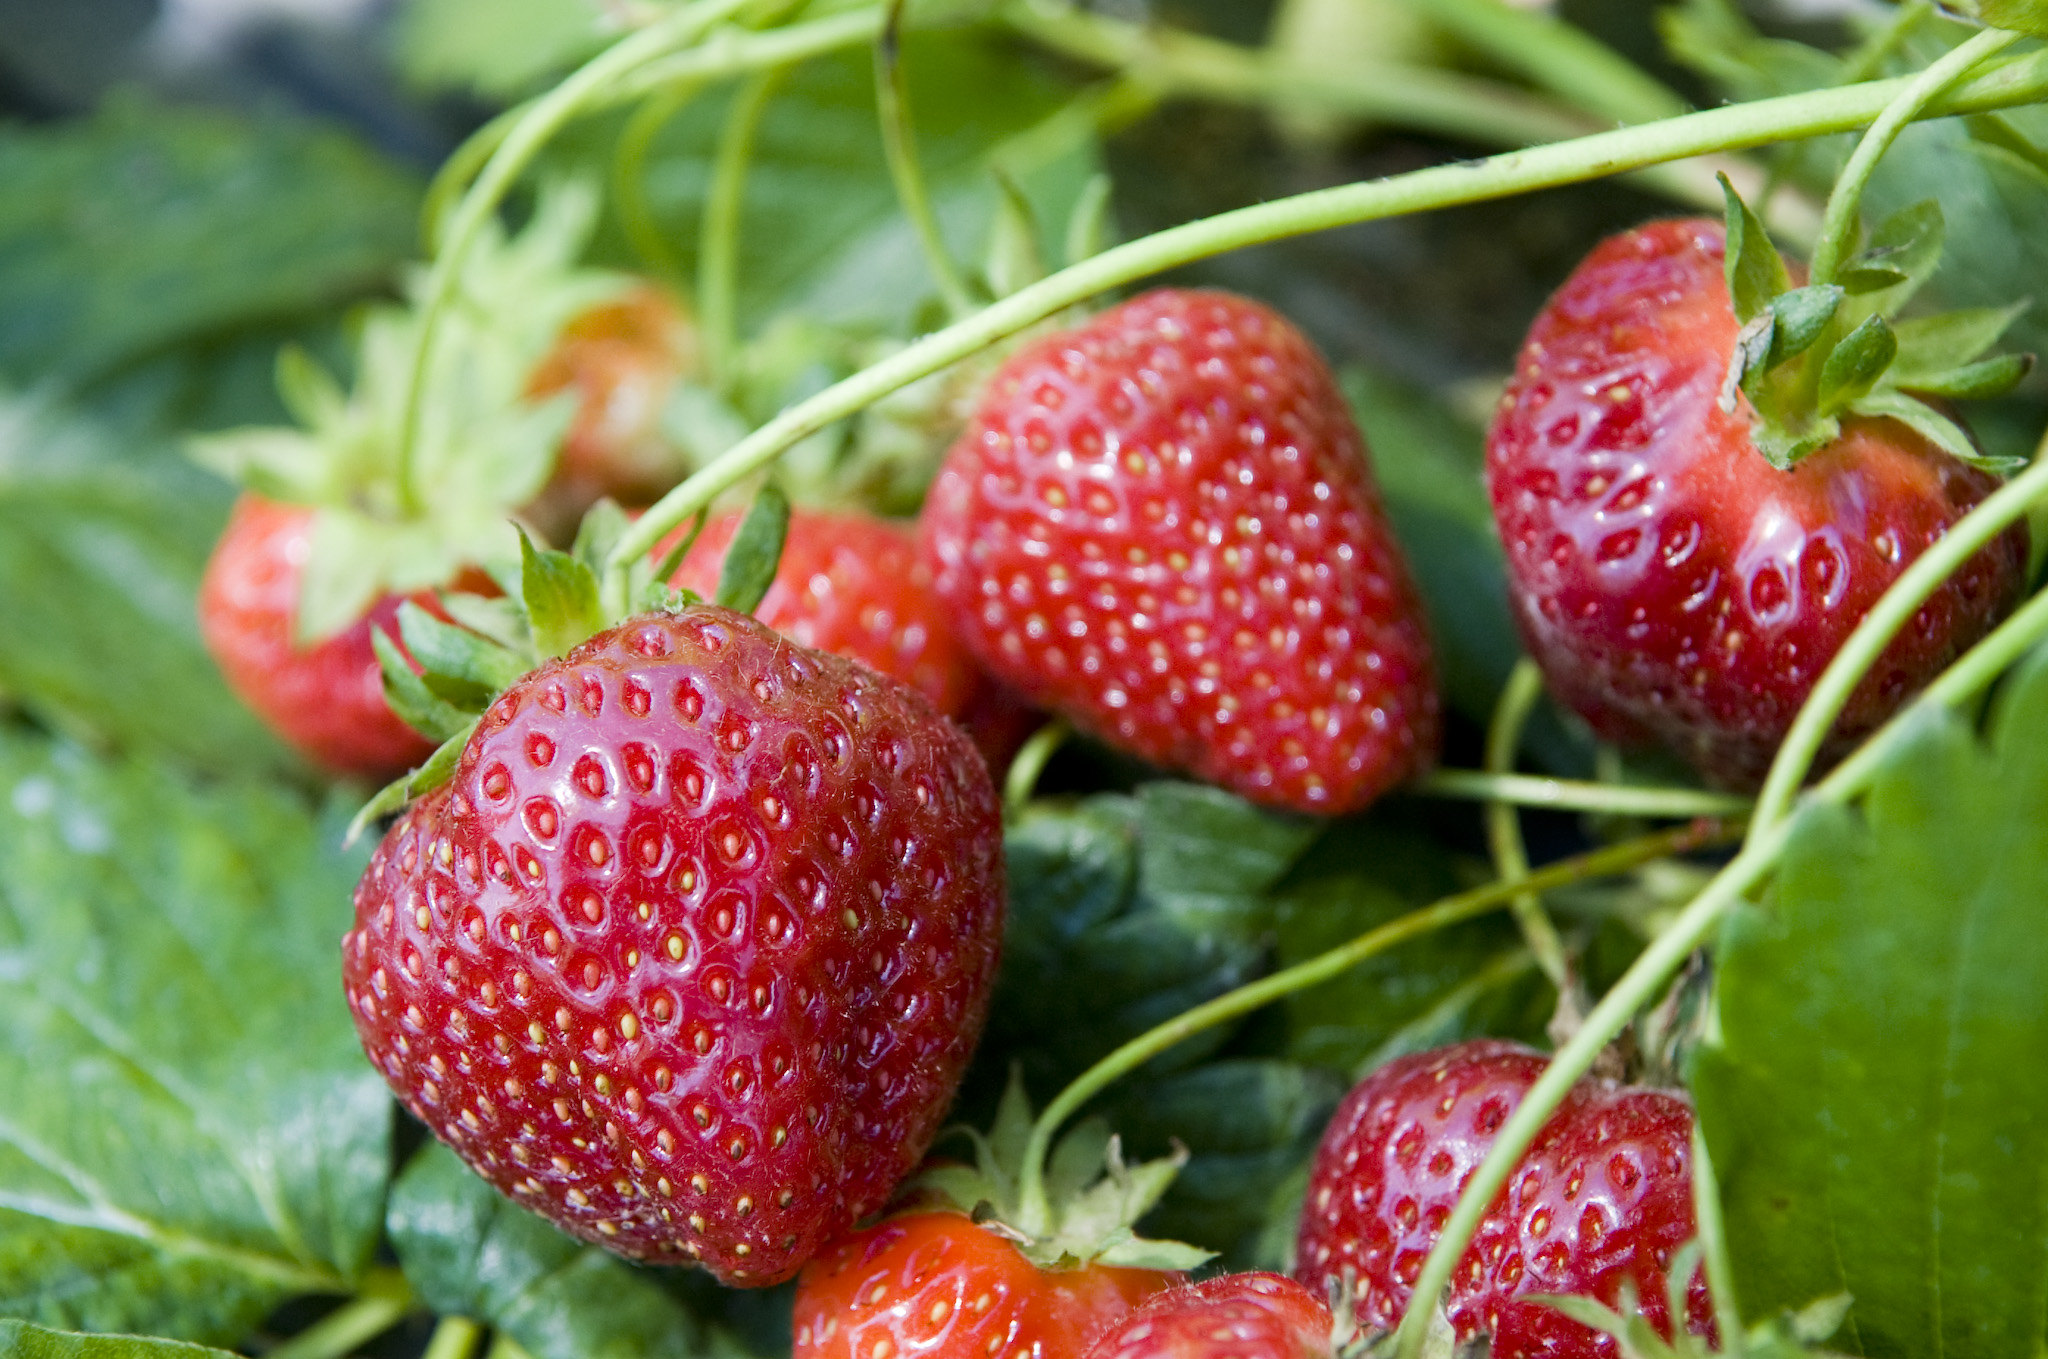 Farmers across Tennessee say sweet and juicy strawberries are ready for harvest despite the COVID-19 effect on consumers. While picking your own berries from...